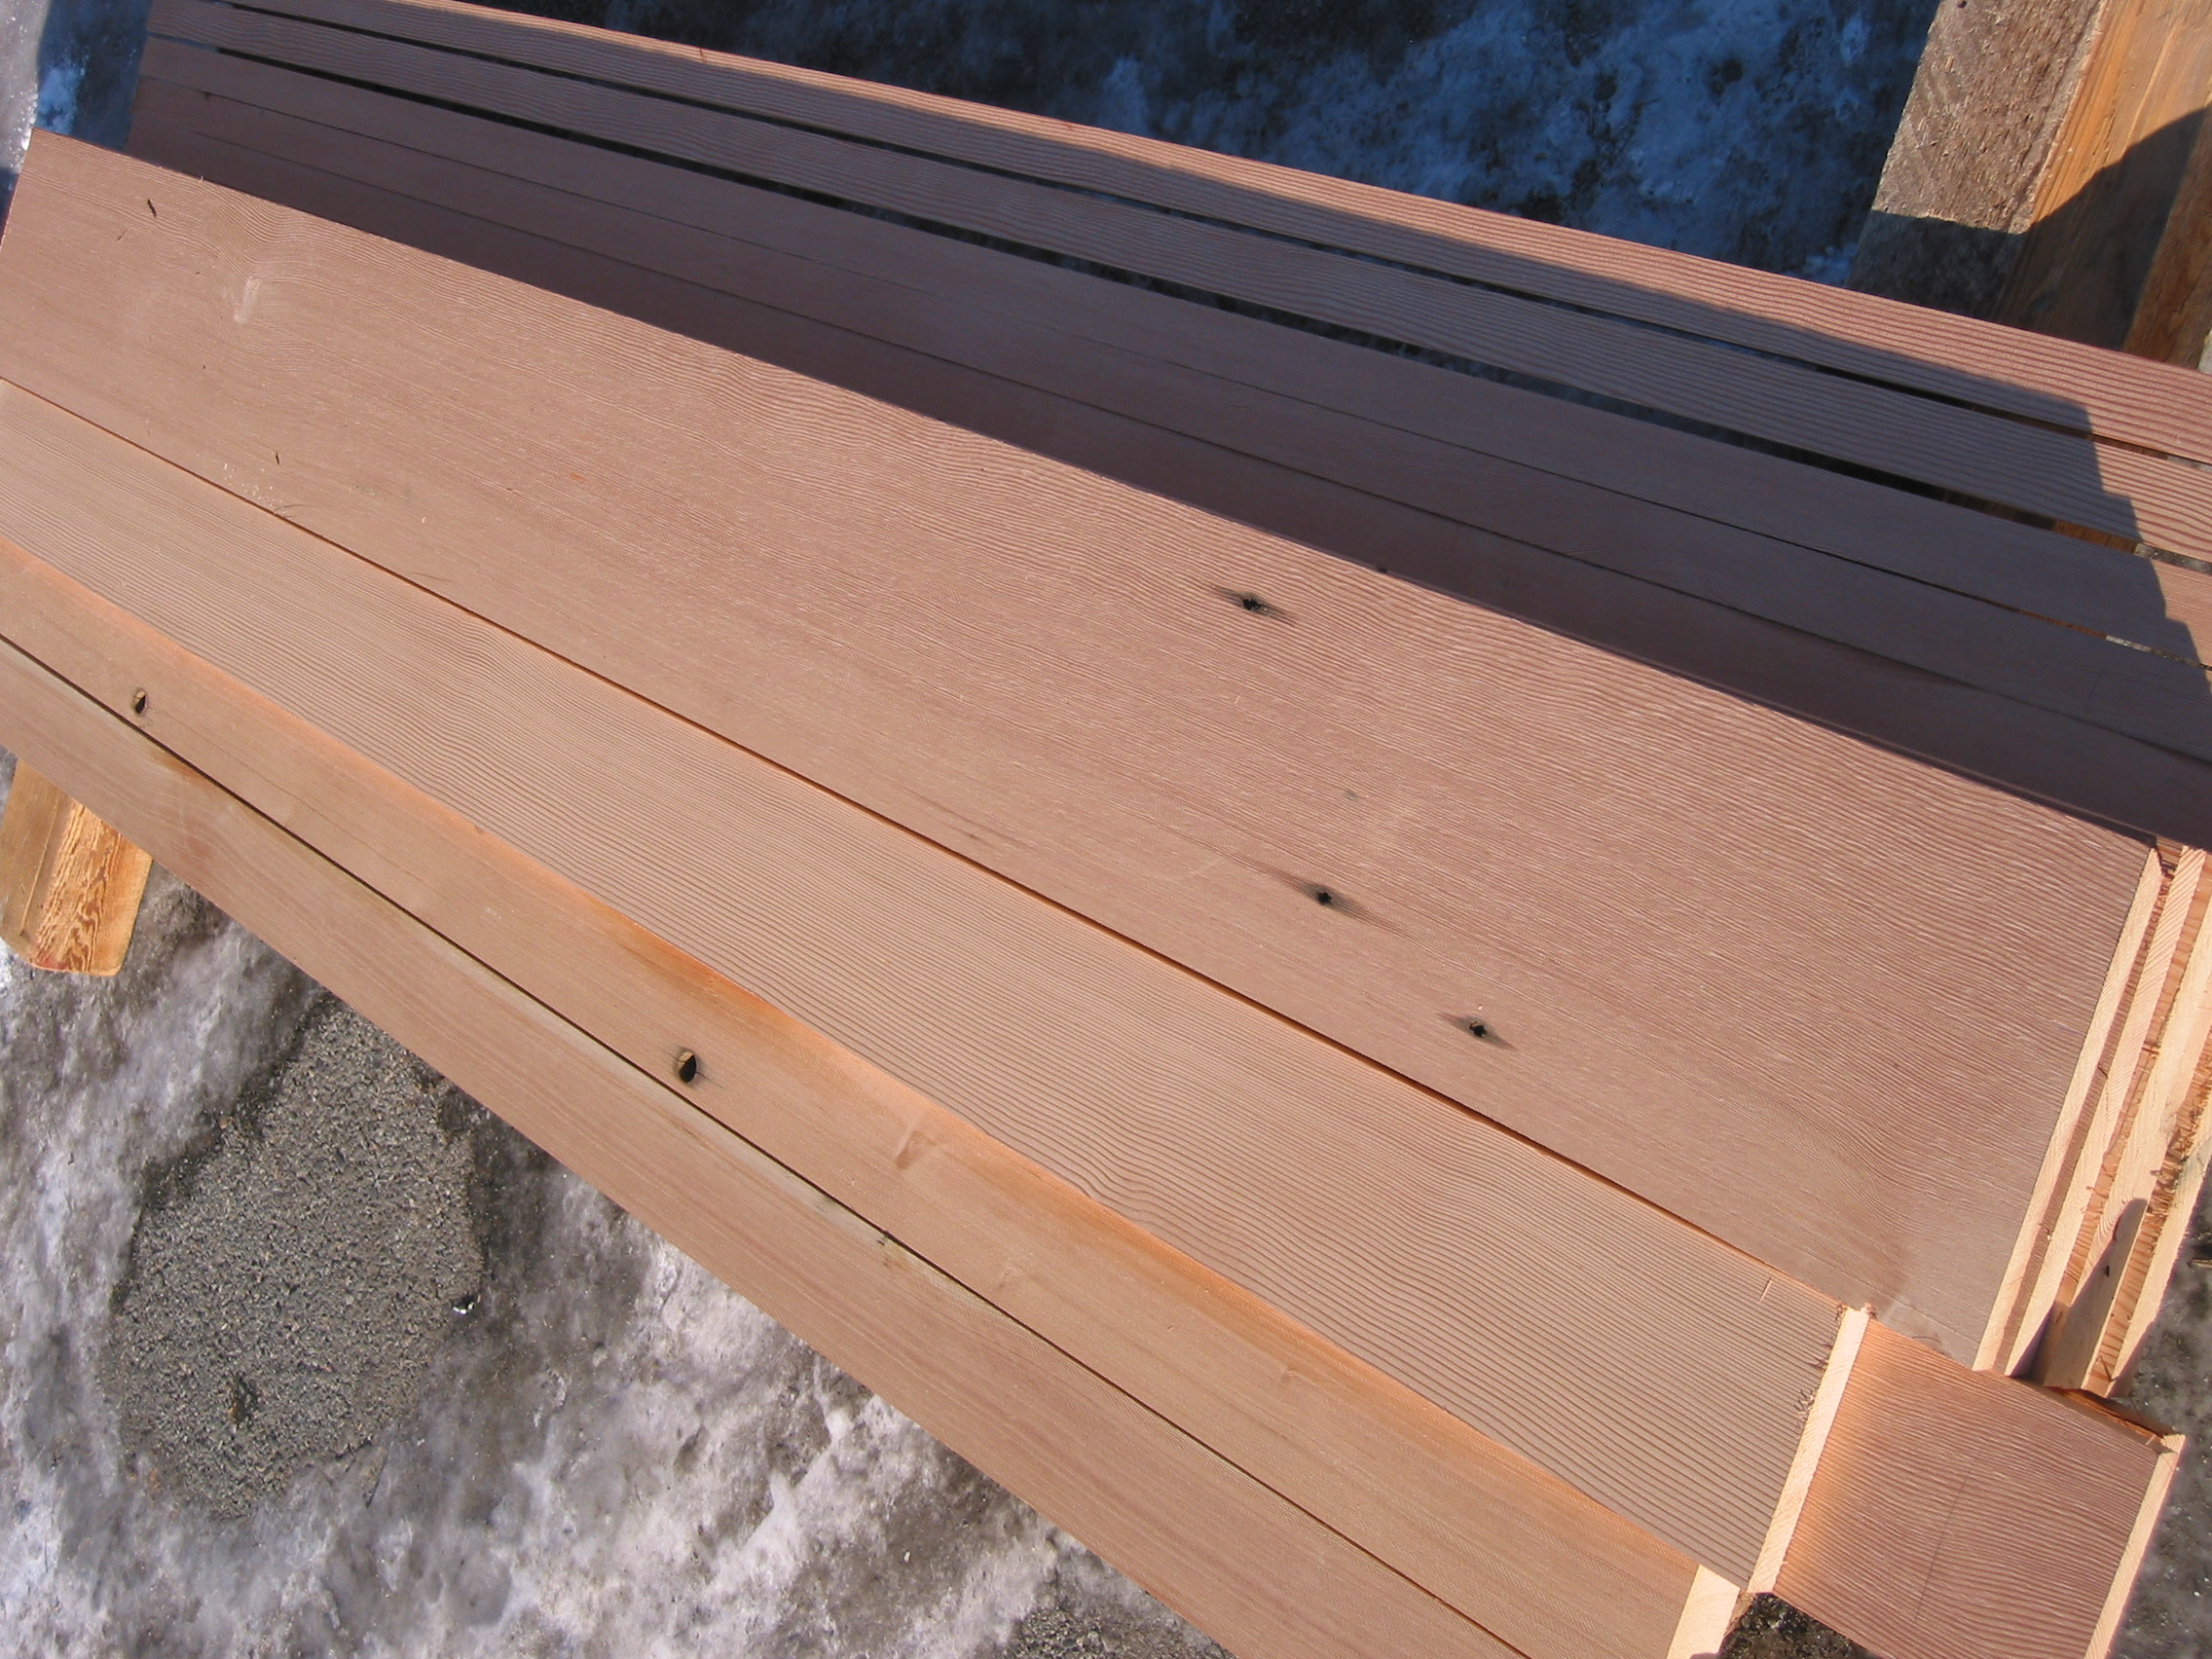 RECLAIMED AND RECYCLED LUMBER: BEAR CREEK LUMBER